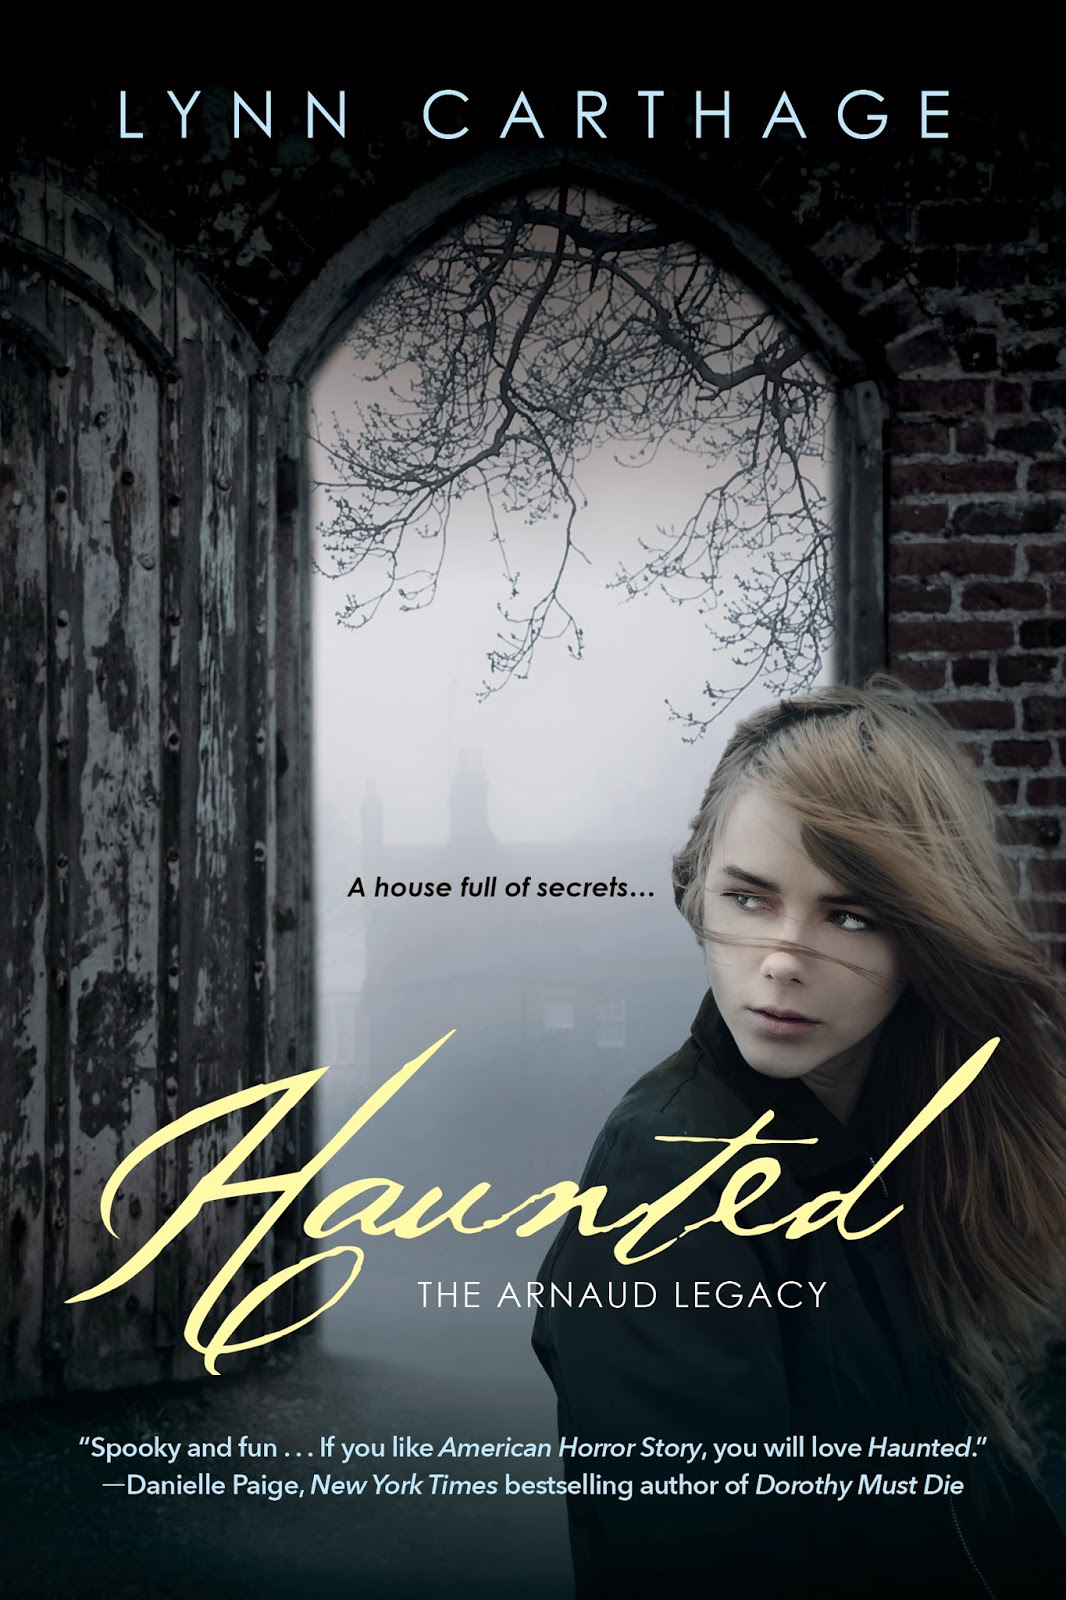 http://www.amazon.com/Haunted-Arnaud-Legacy-Lynn-Carthage/dp/1617736260